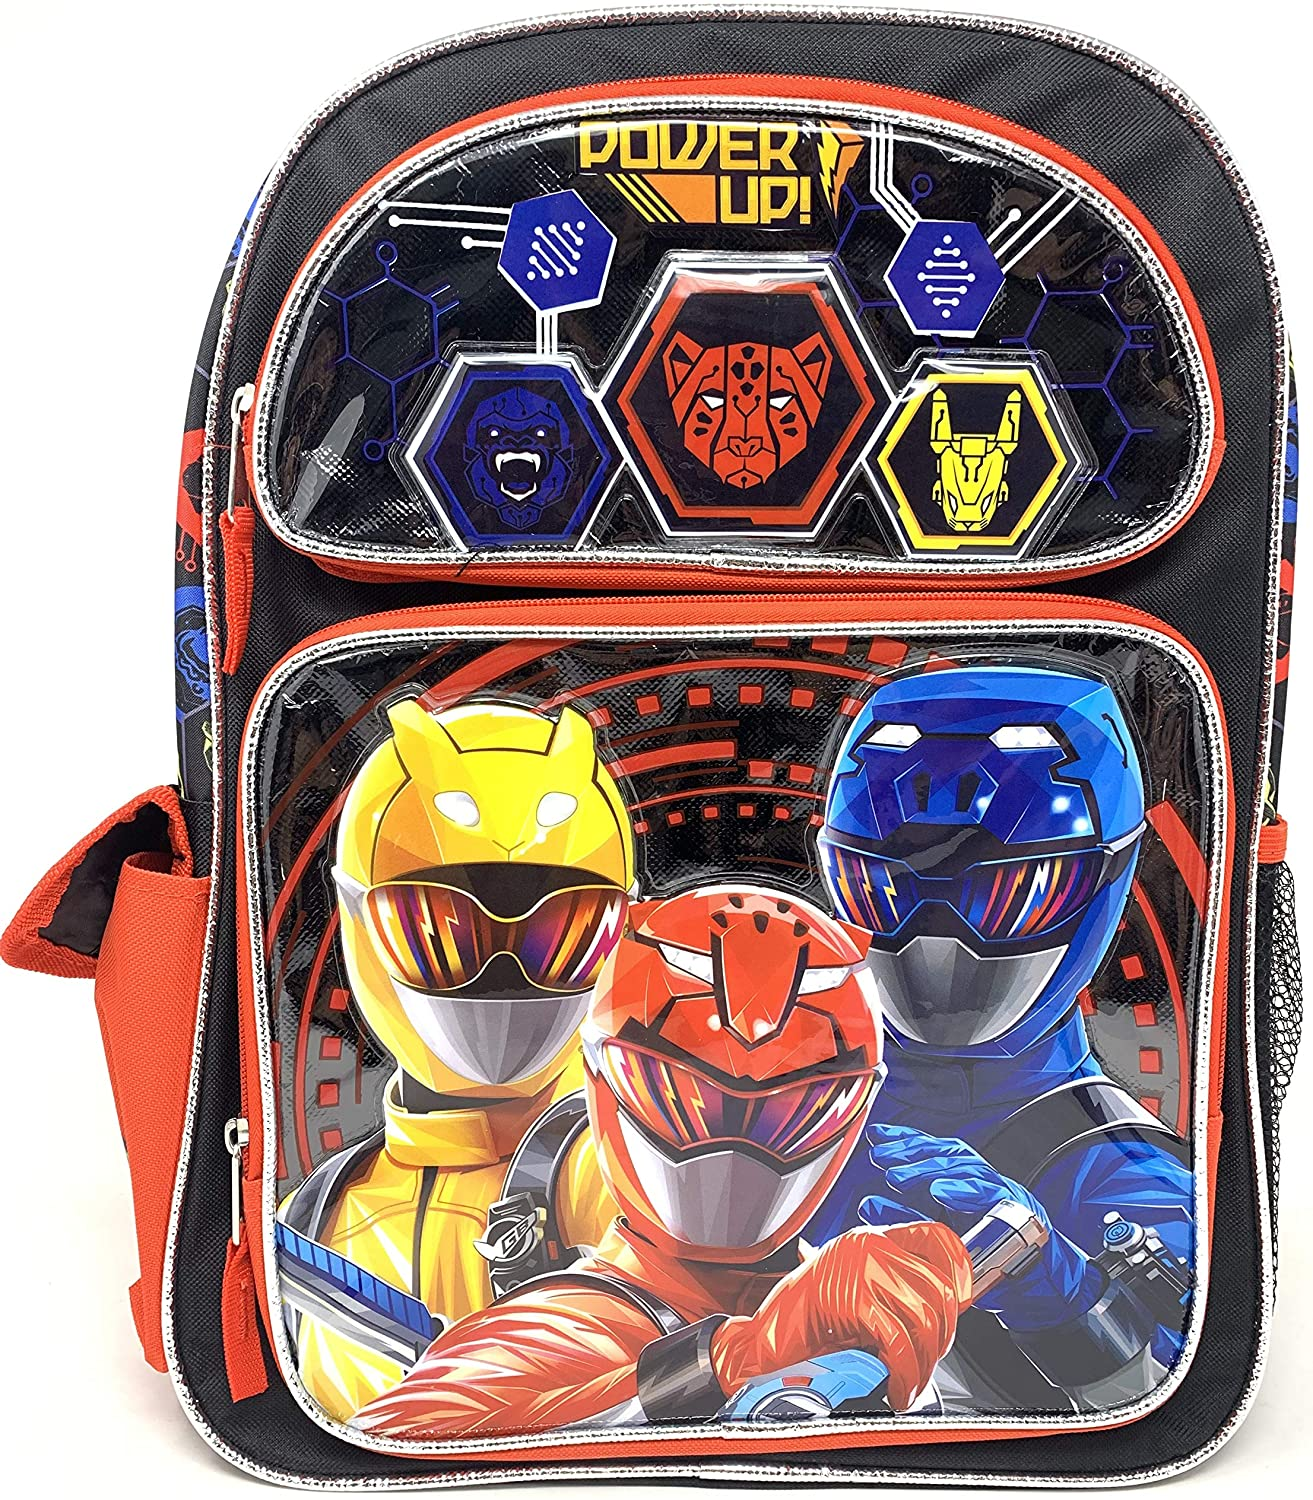 Saban's Power Rangers 16 inch Backpack with Side Pockets - Power